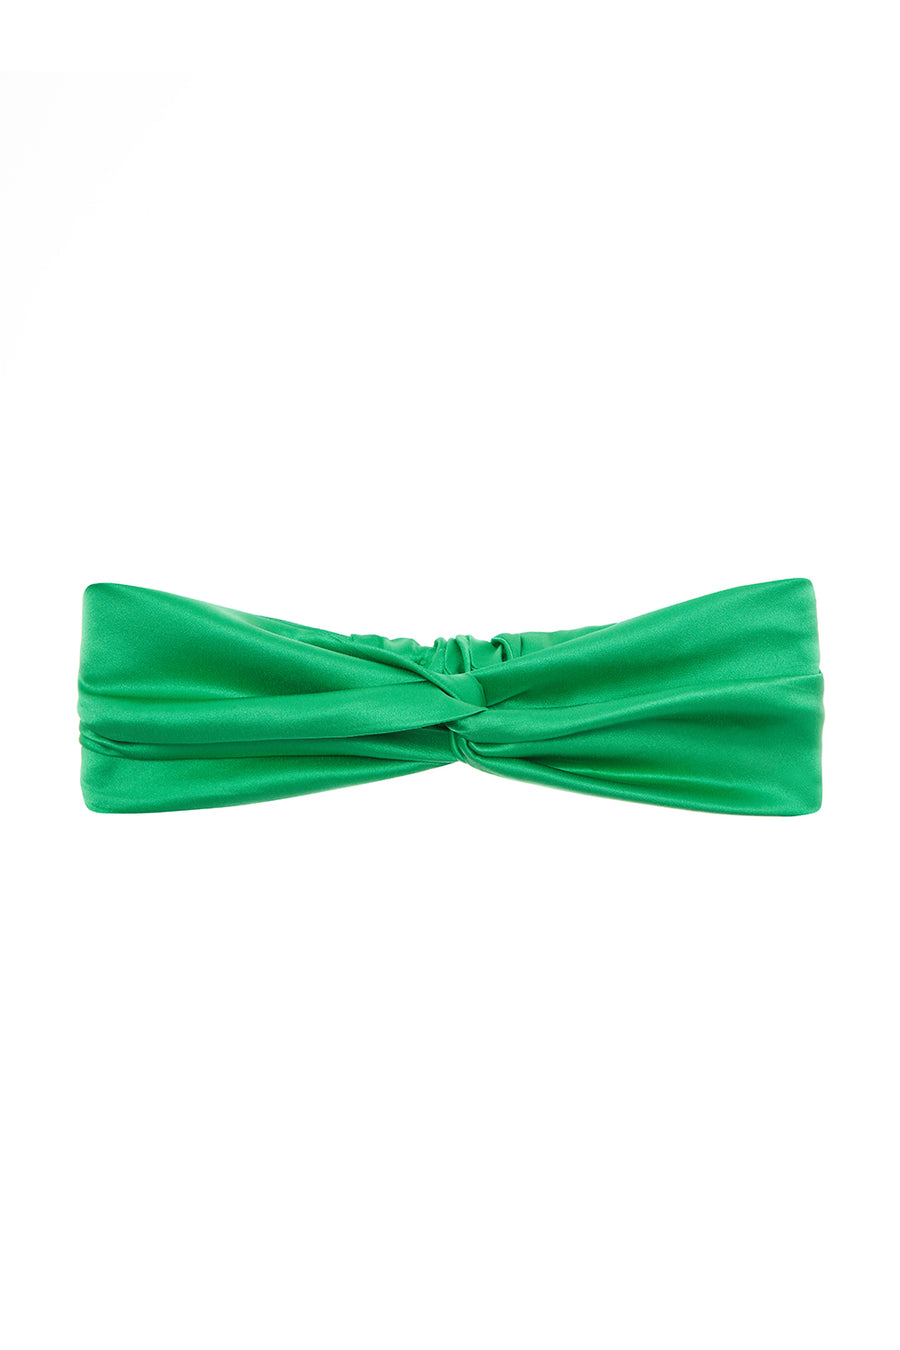 The Headband | Emerald Green Satin